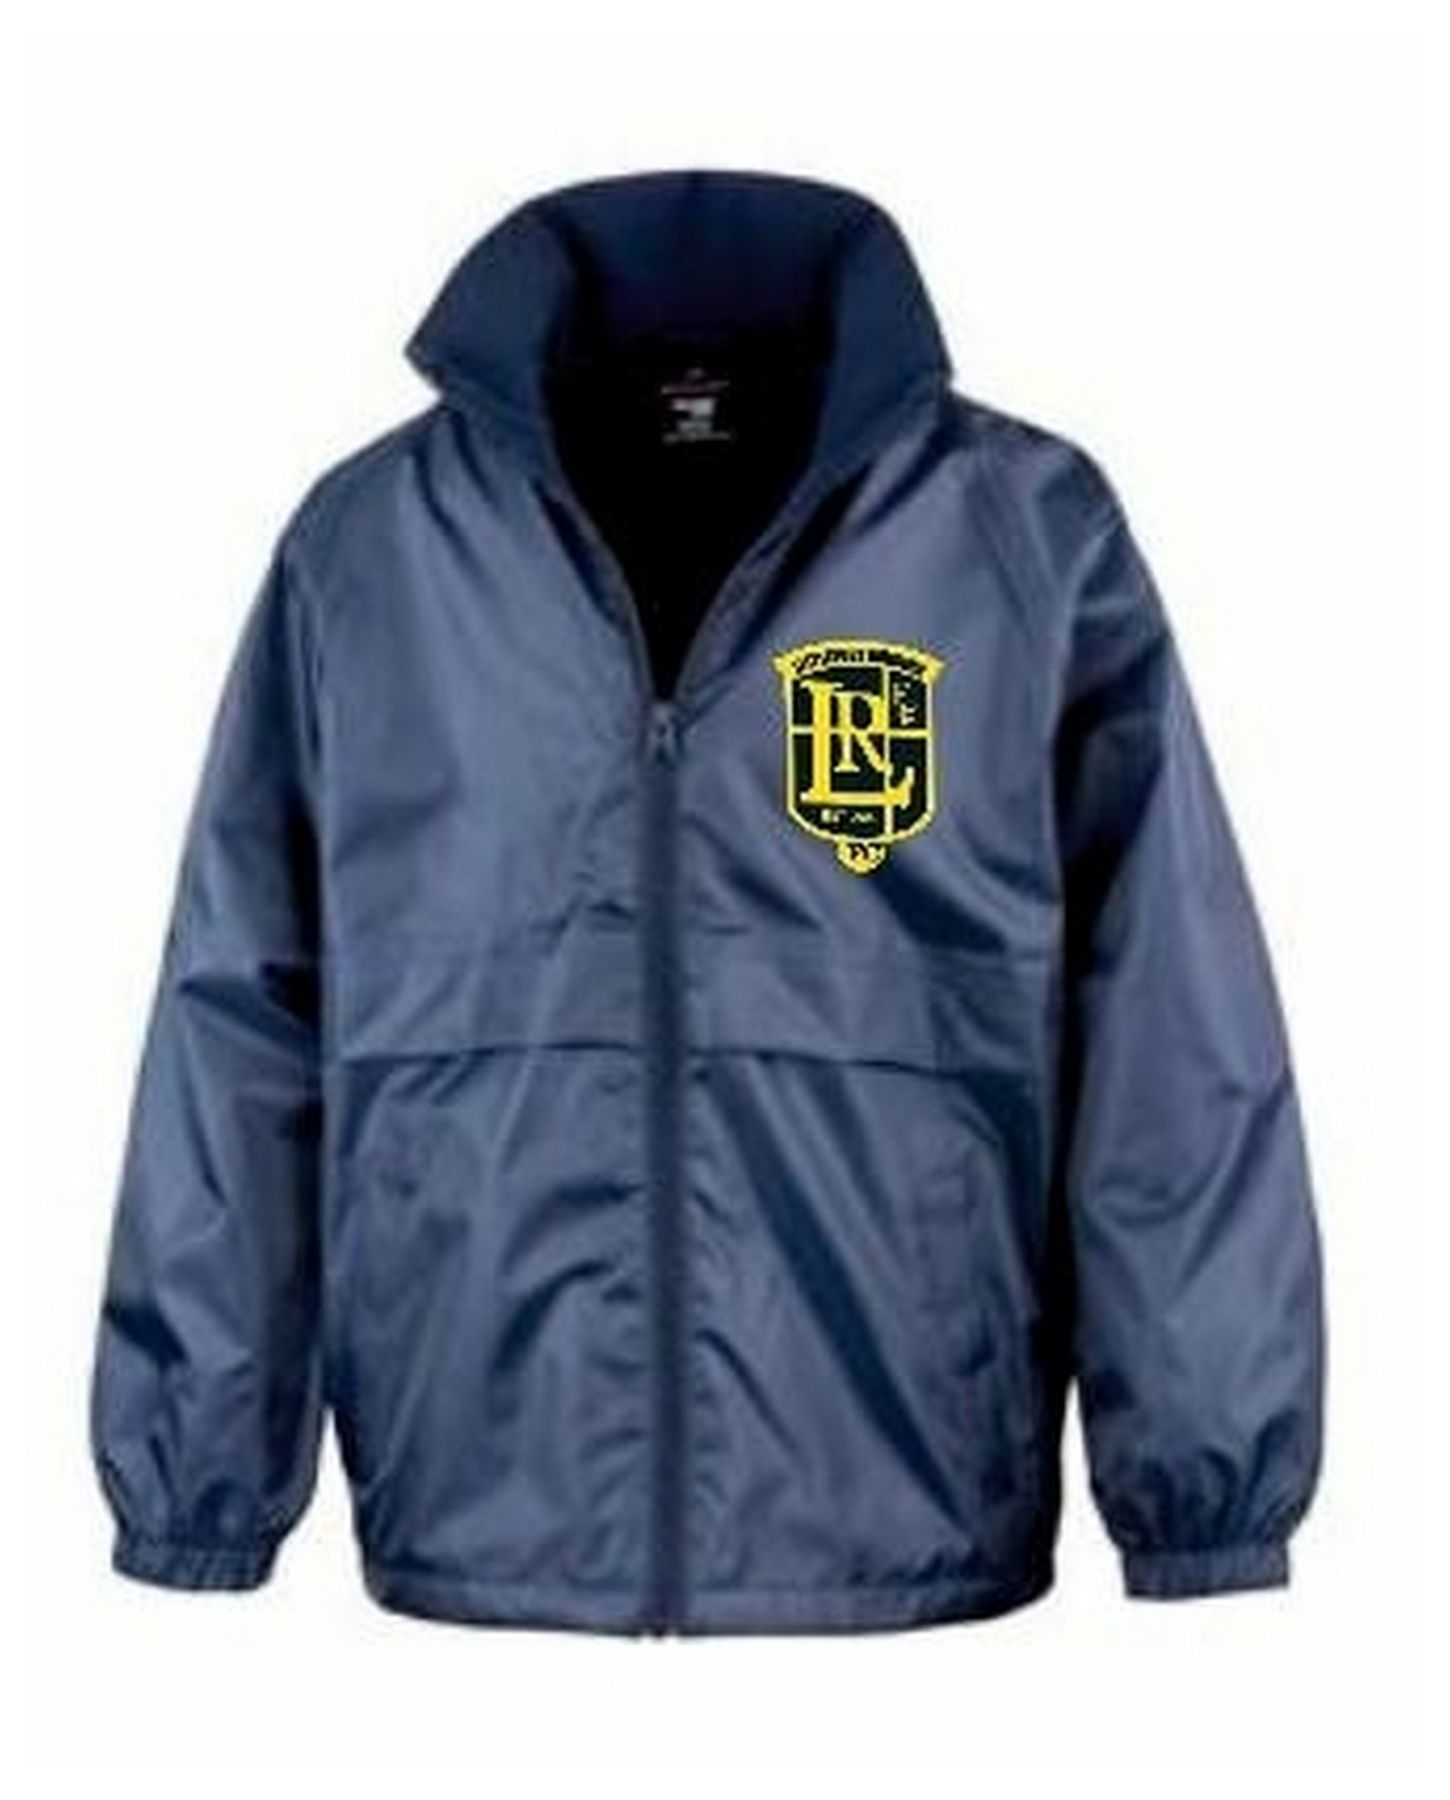 Littleport Rangers – Core Microfleece Lined Jacket Adult